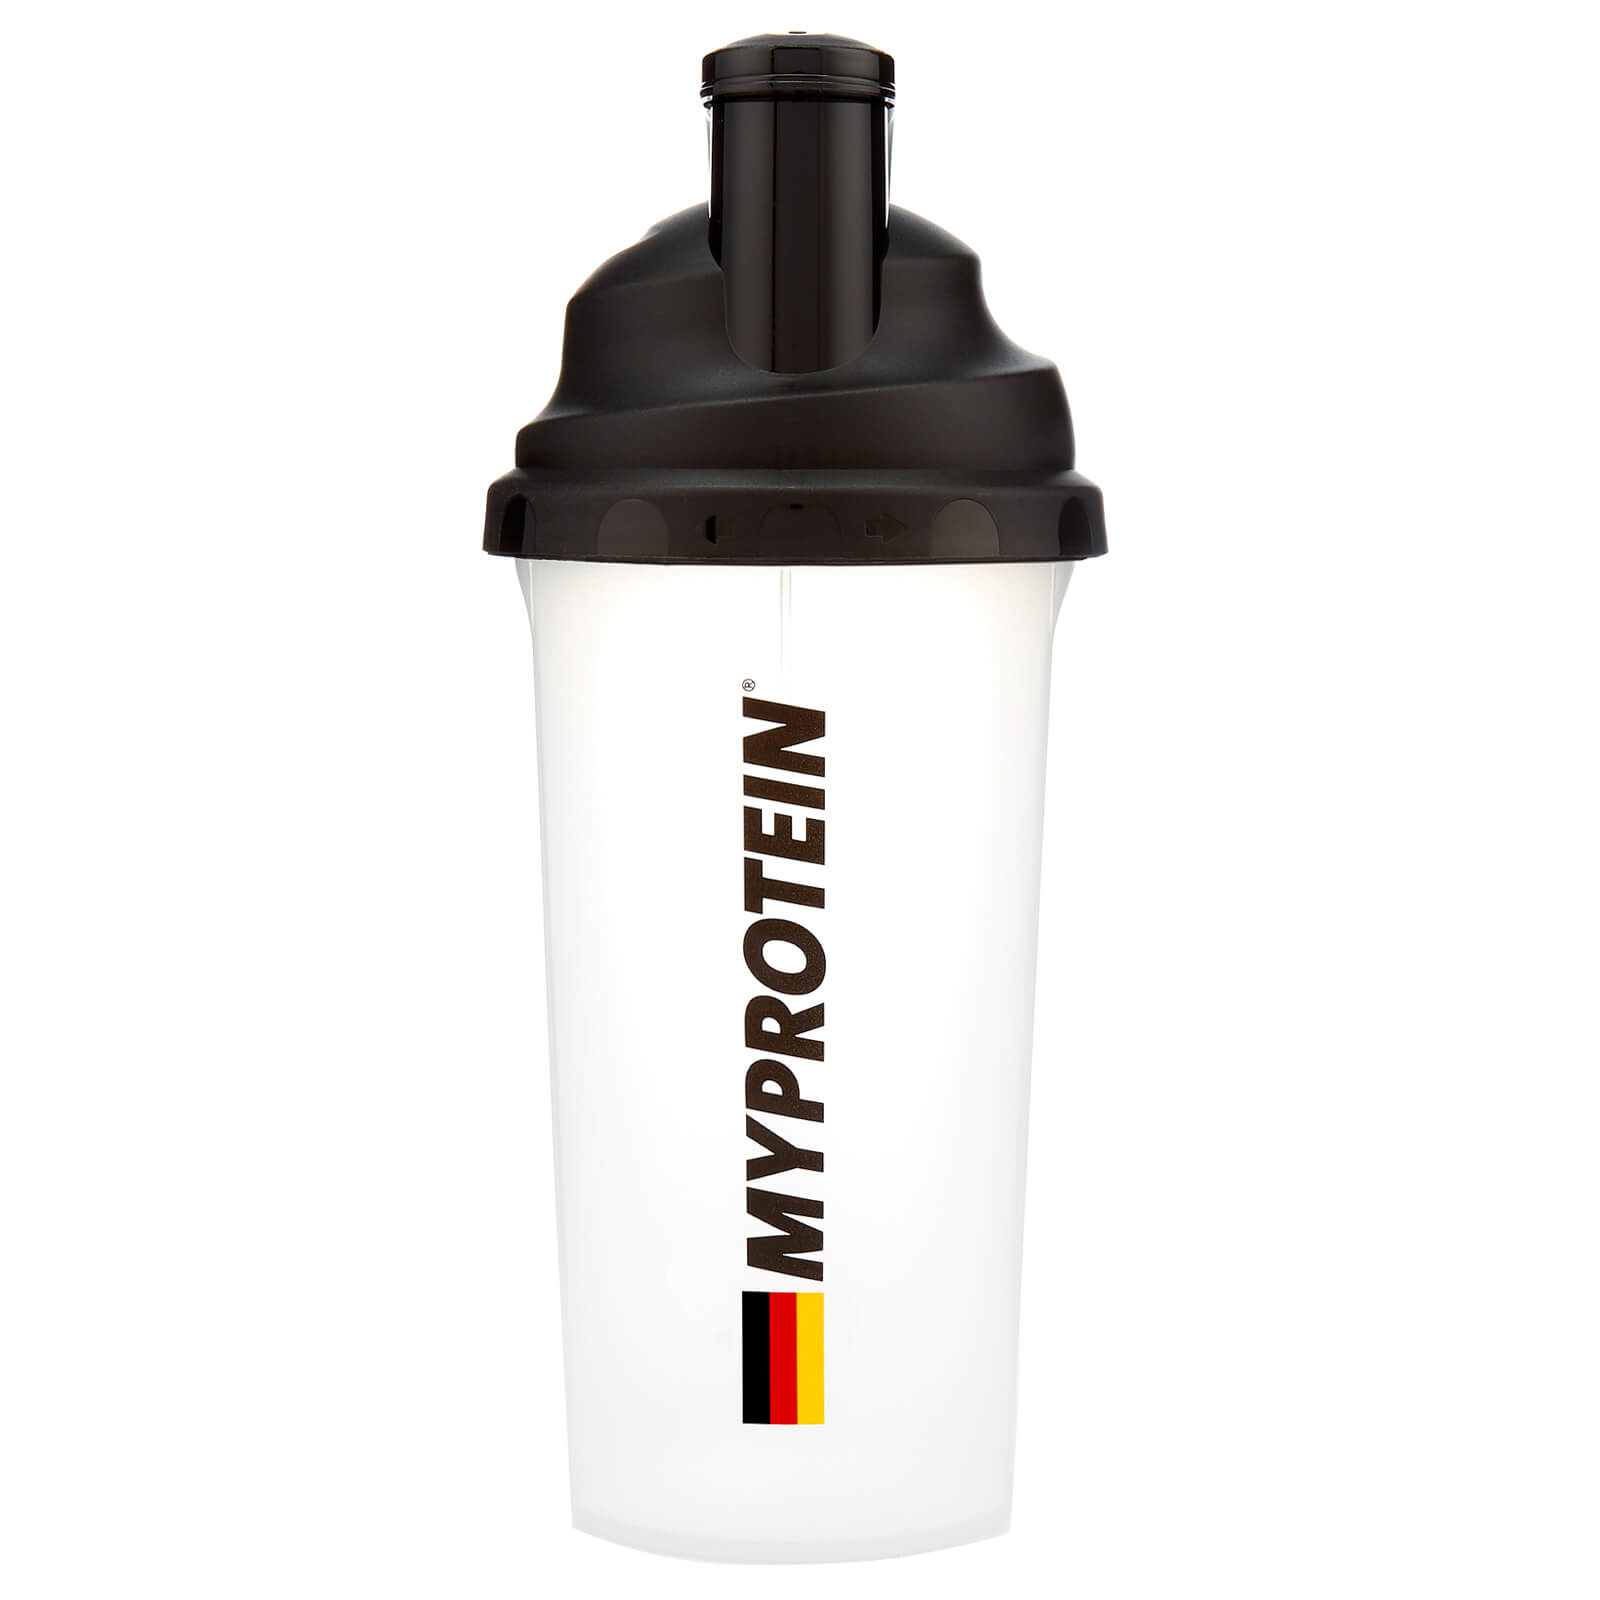 Mixmaster Shaker — Germany